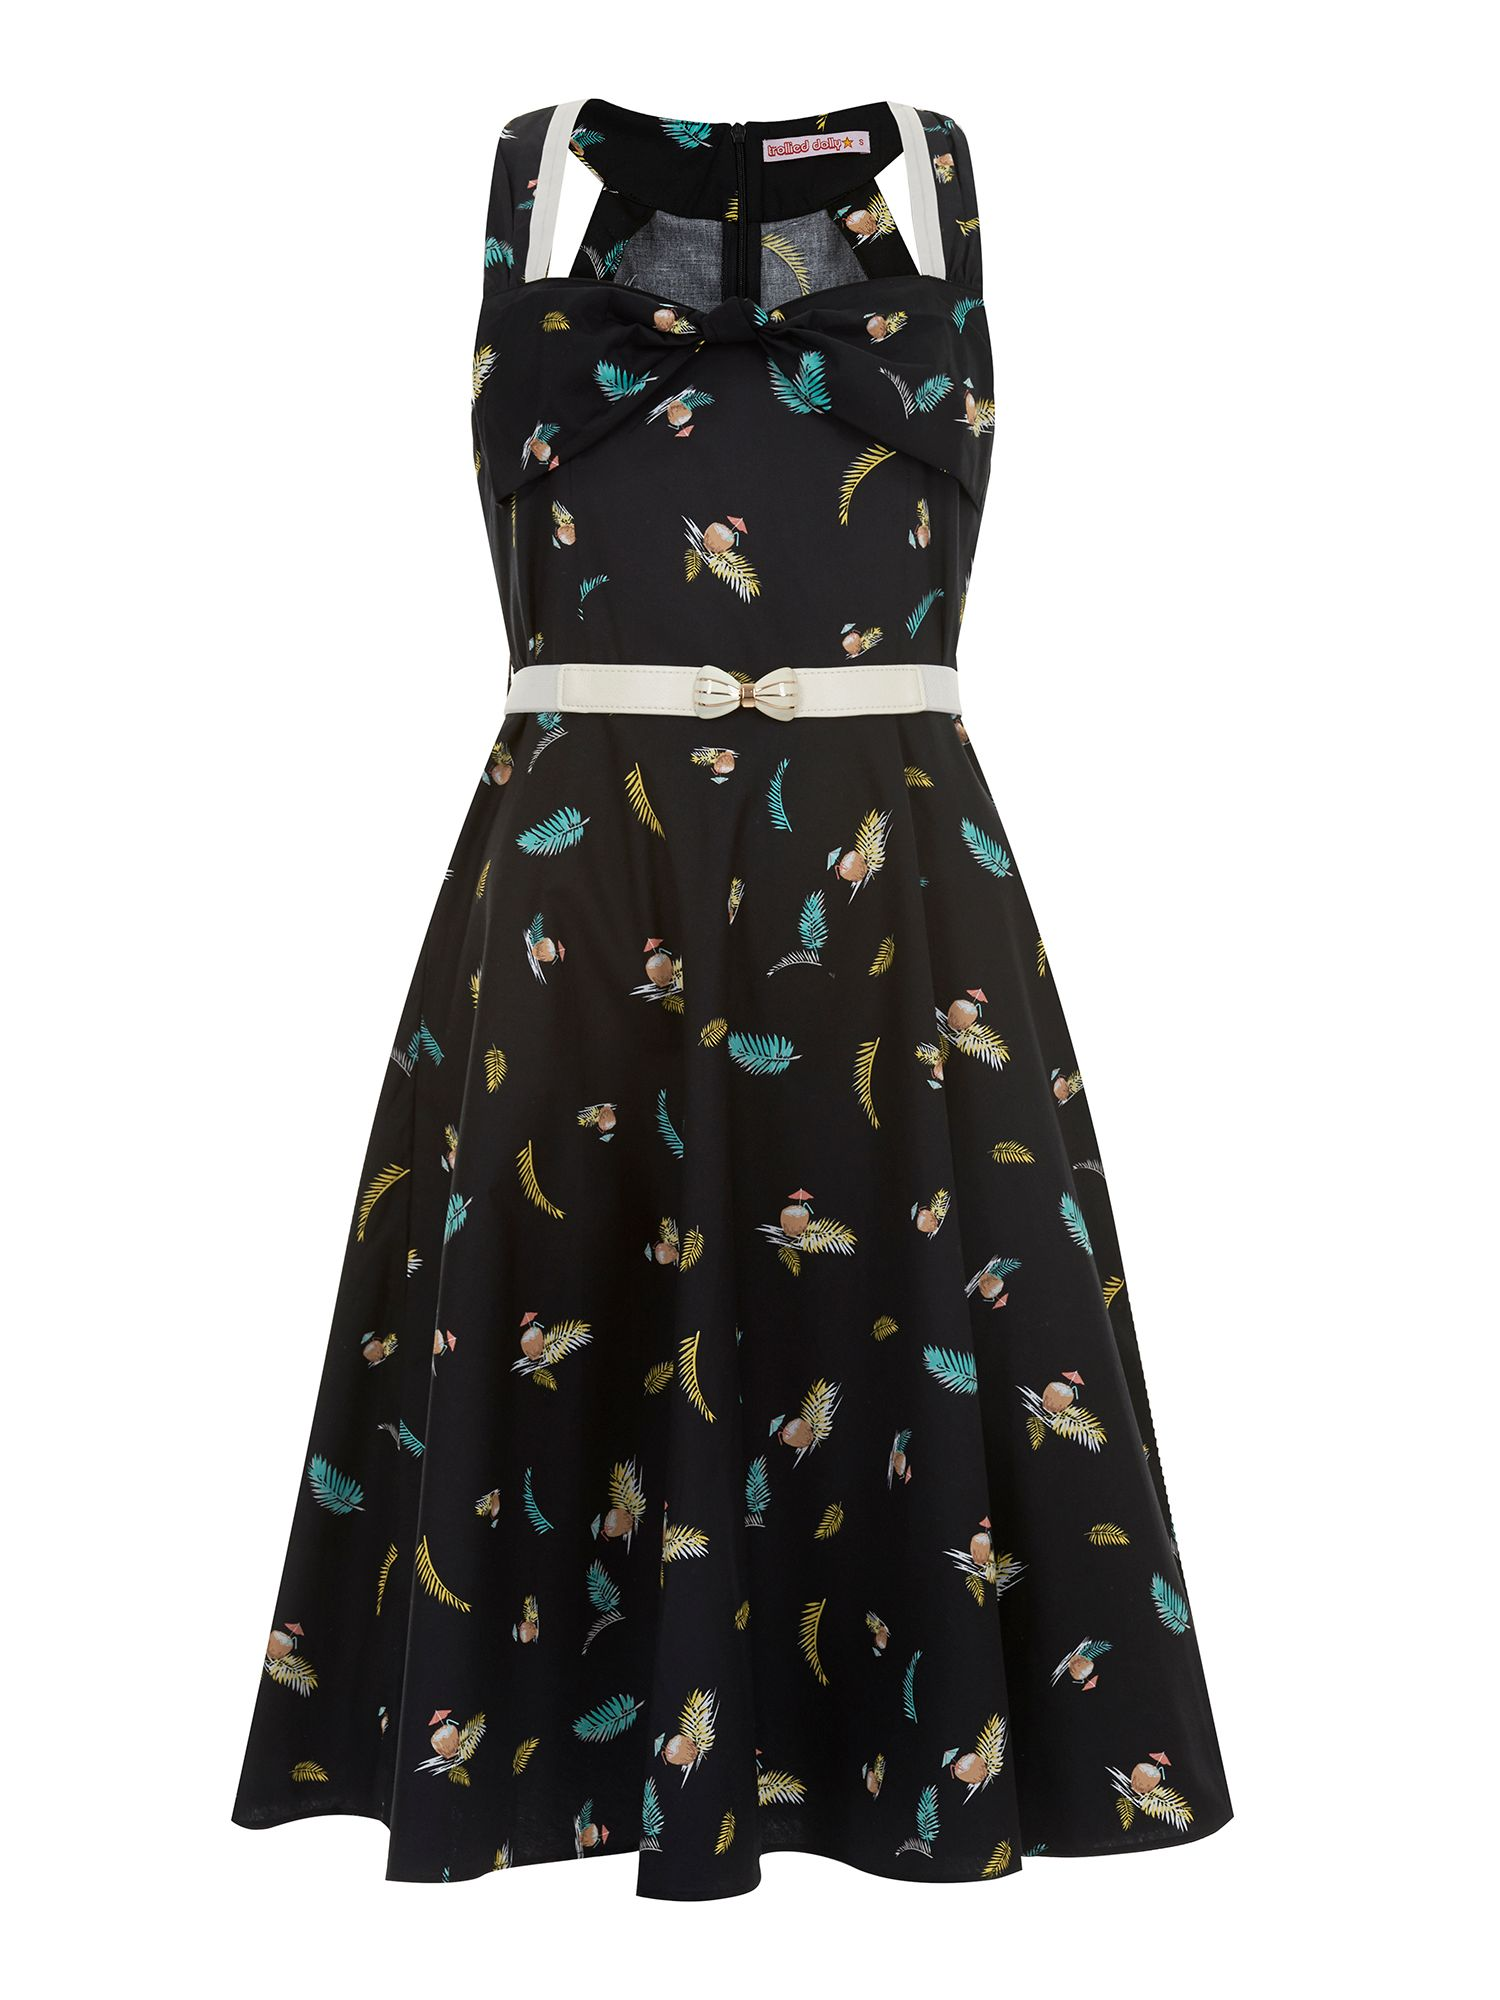 Trollied Dolly Rock around the Clock Dress $38.50 AT vintagedancer.com